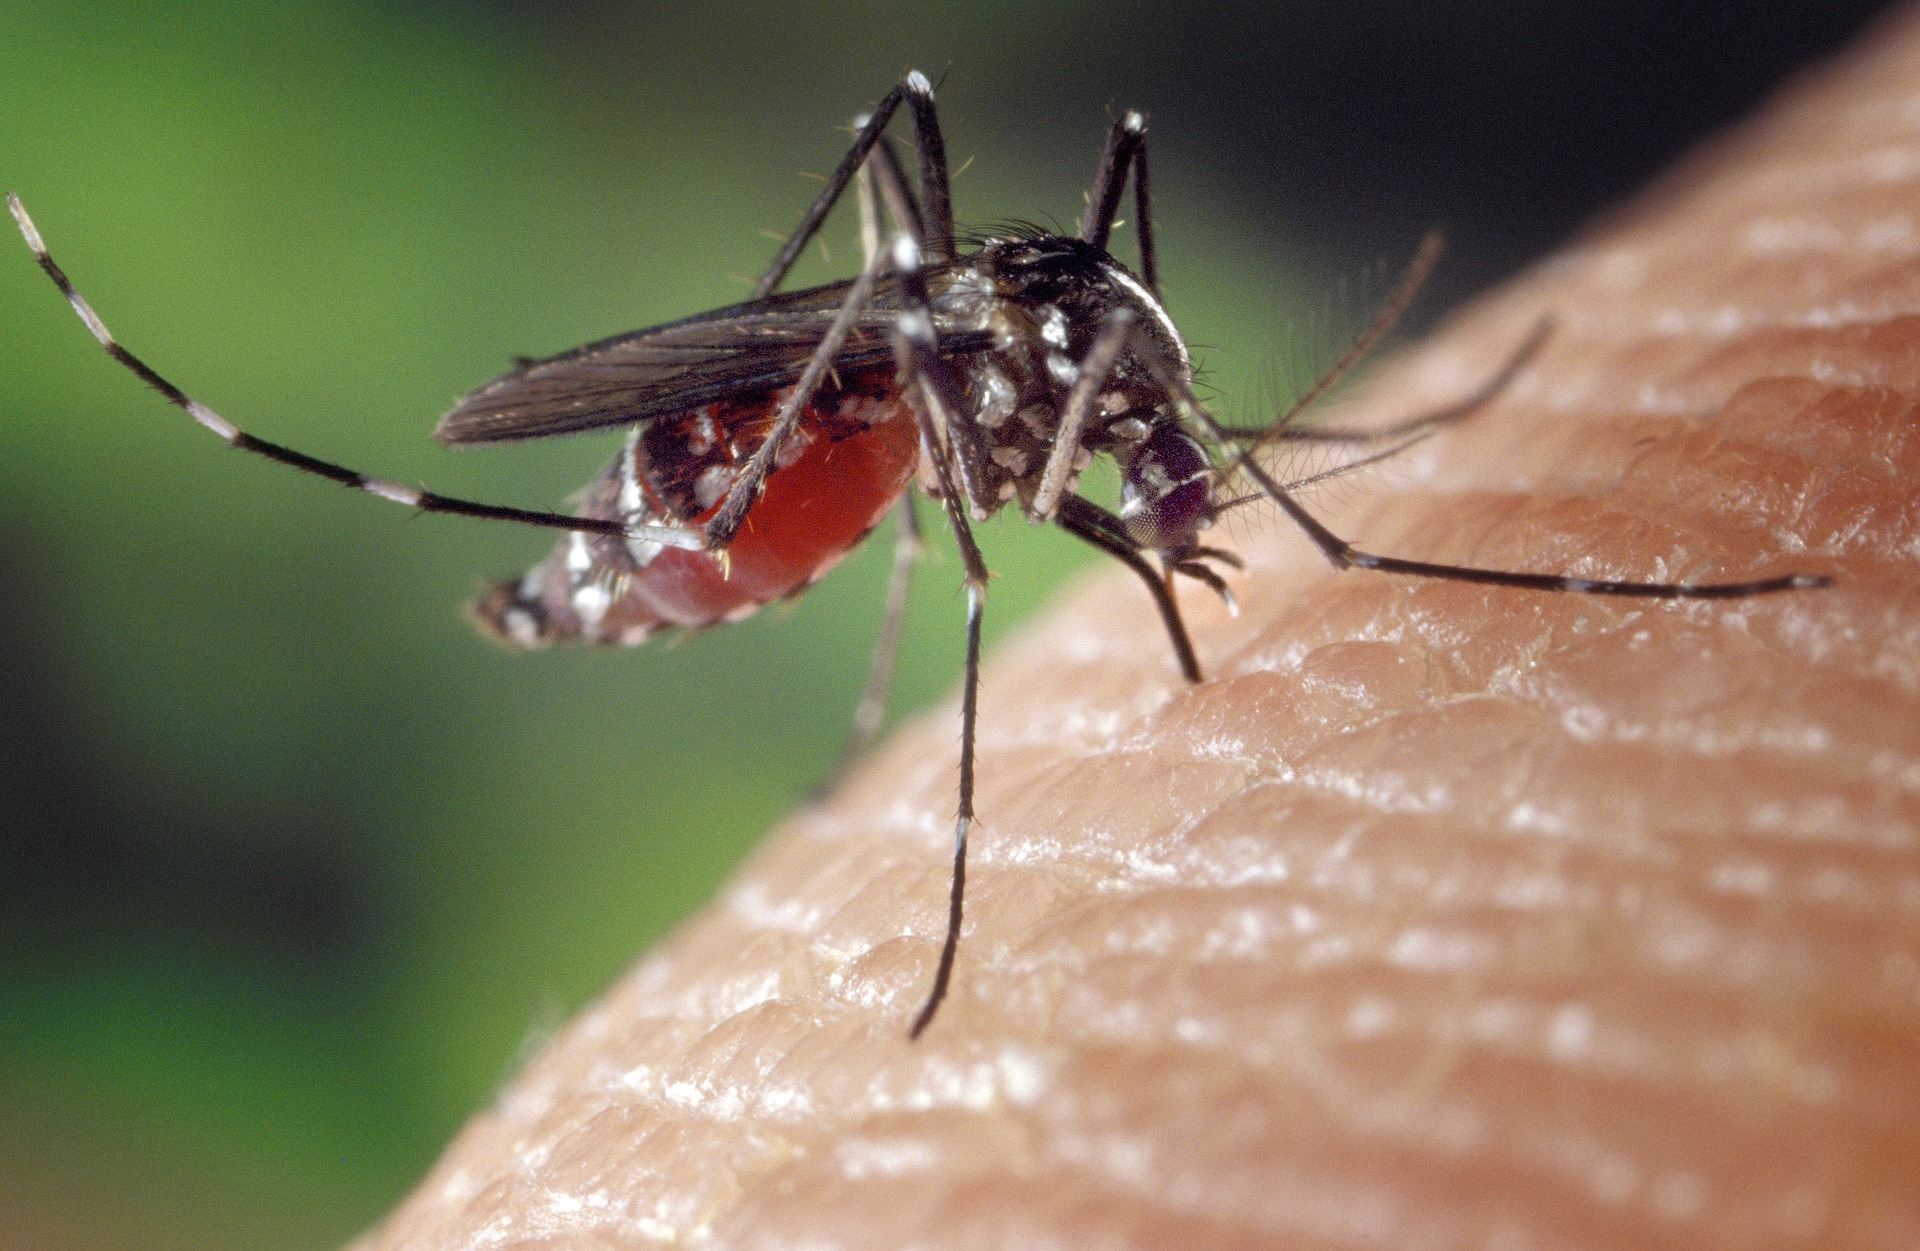 Mosquitos bites are not only annoying, but are proven to spread many diseases.